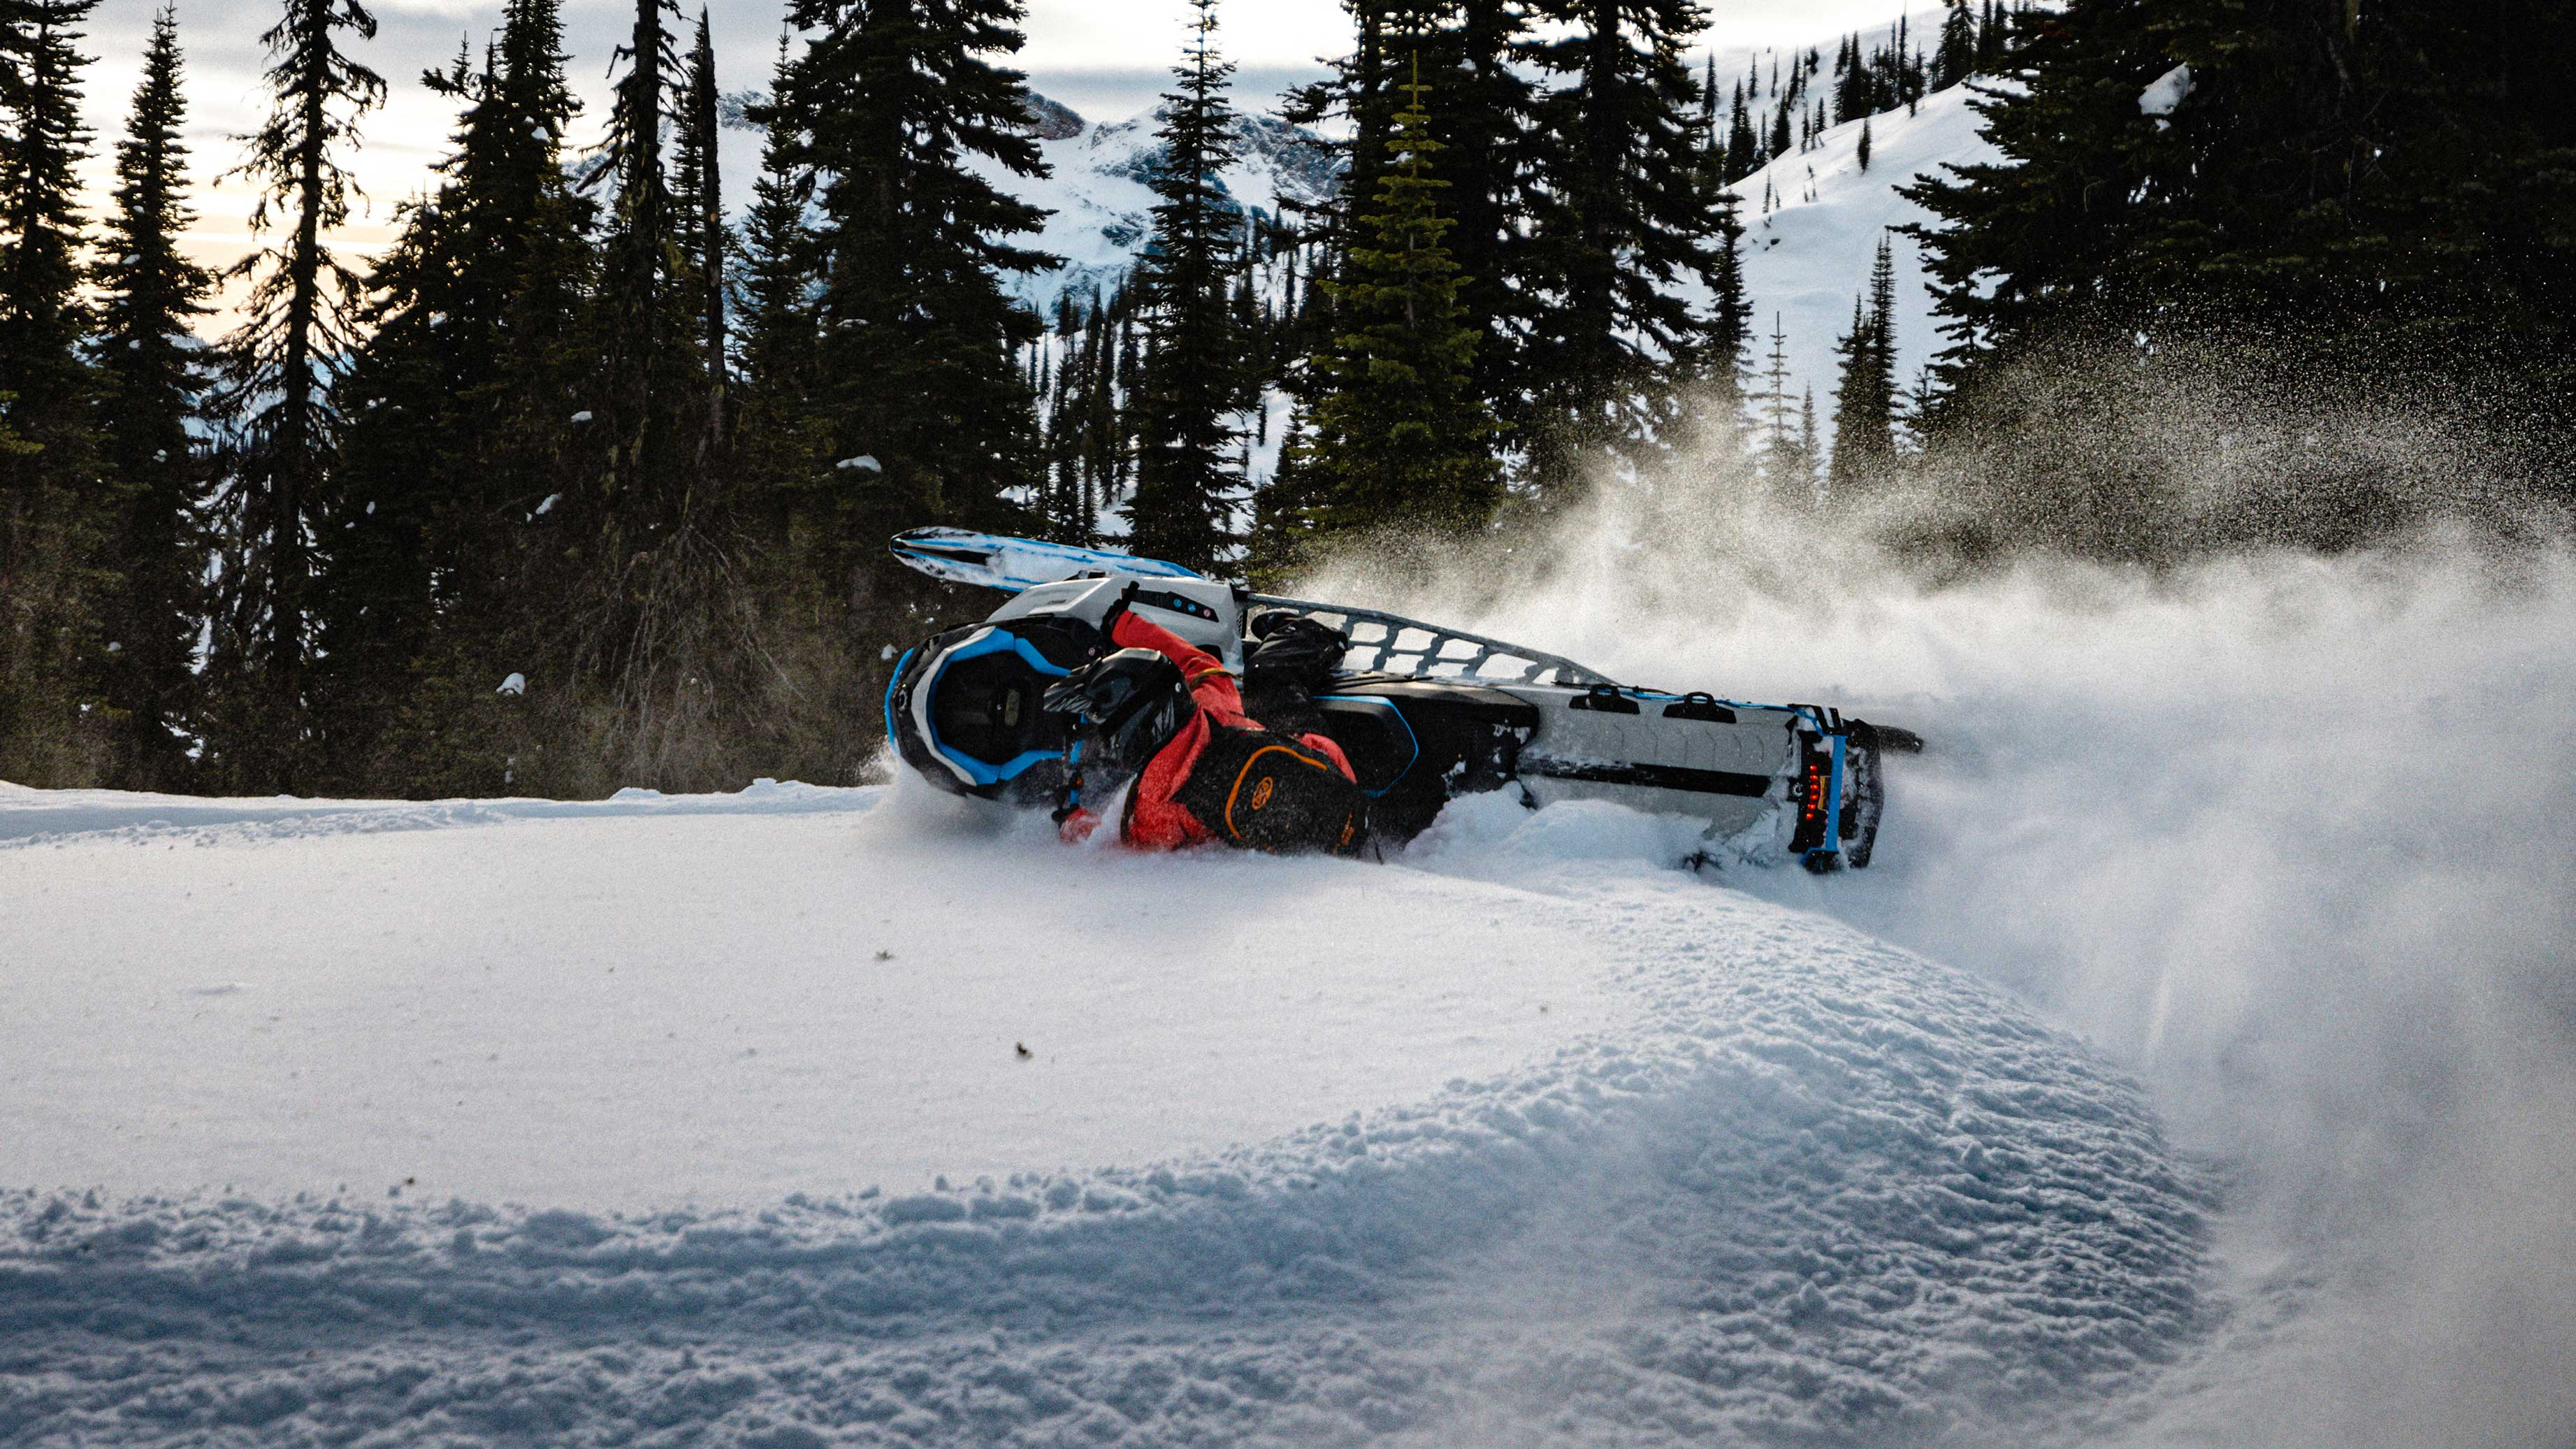 Ski-Doo Summit carving in Deep-Snow